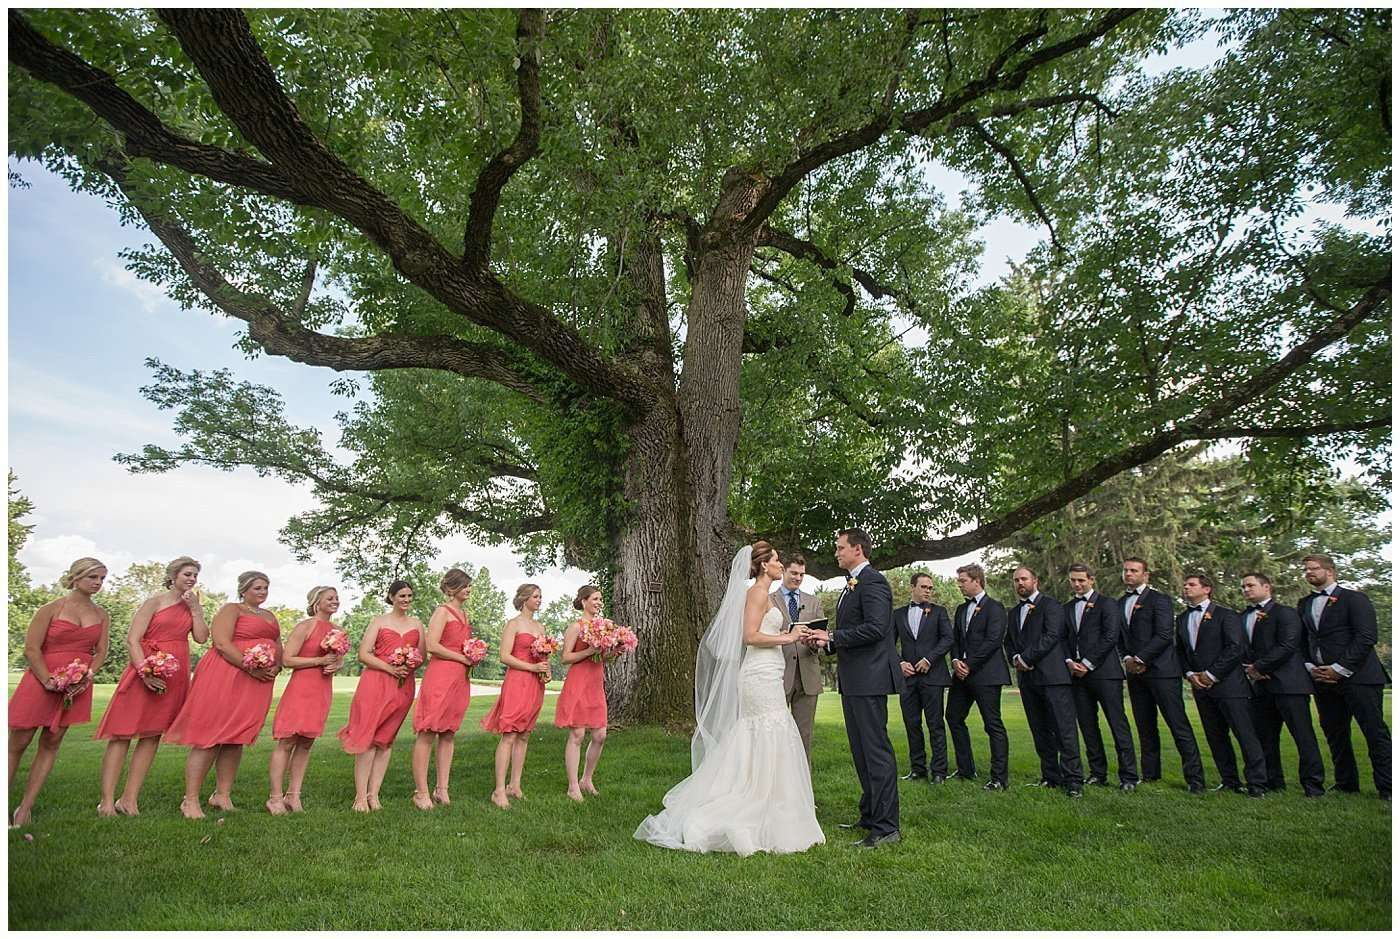 Kim & Lee | A Summer Wedding at Brookside Country Club 124